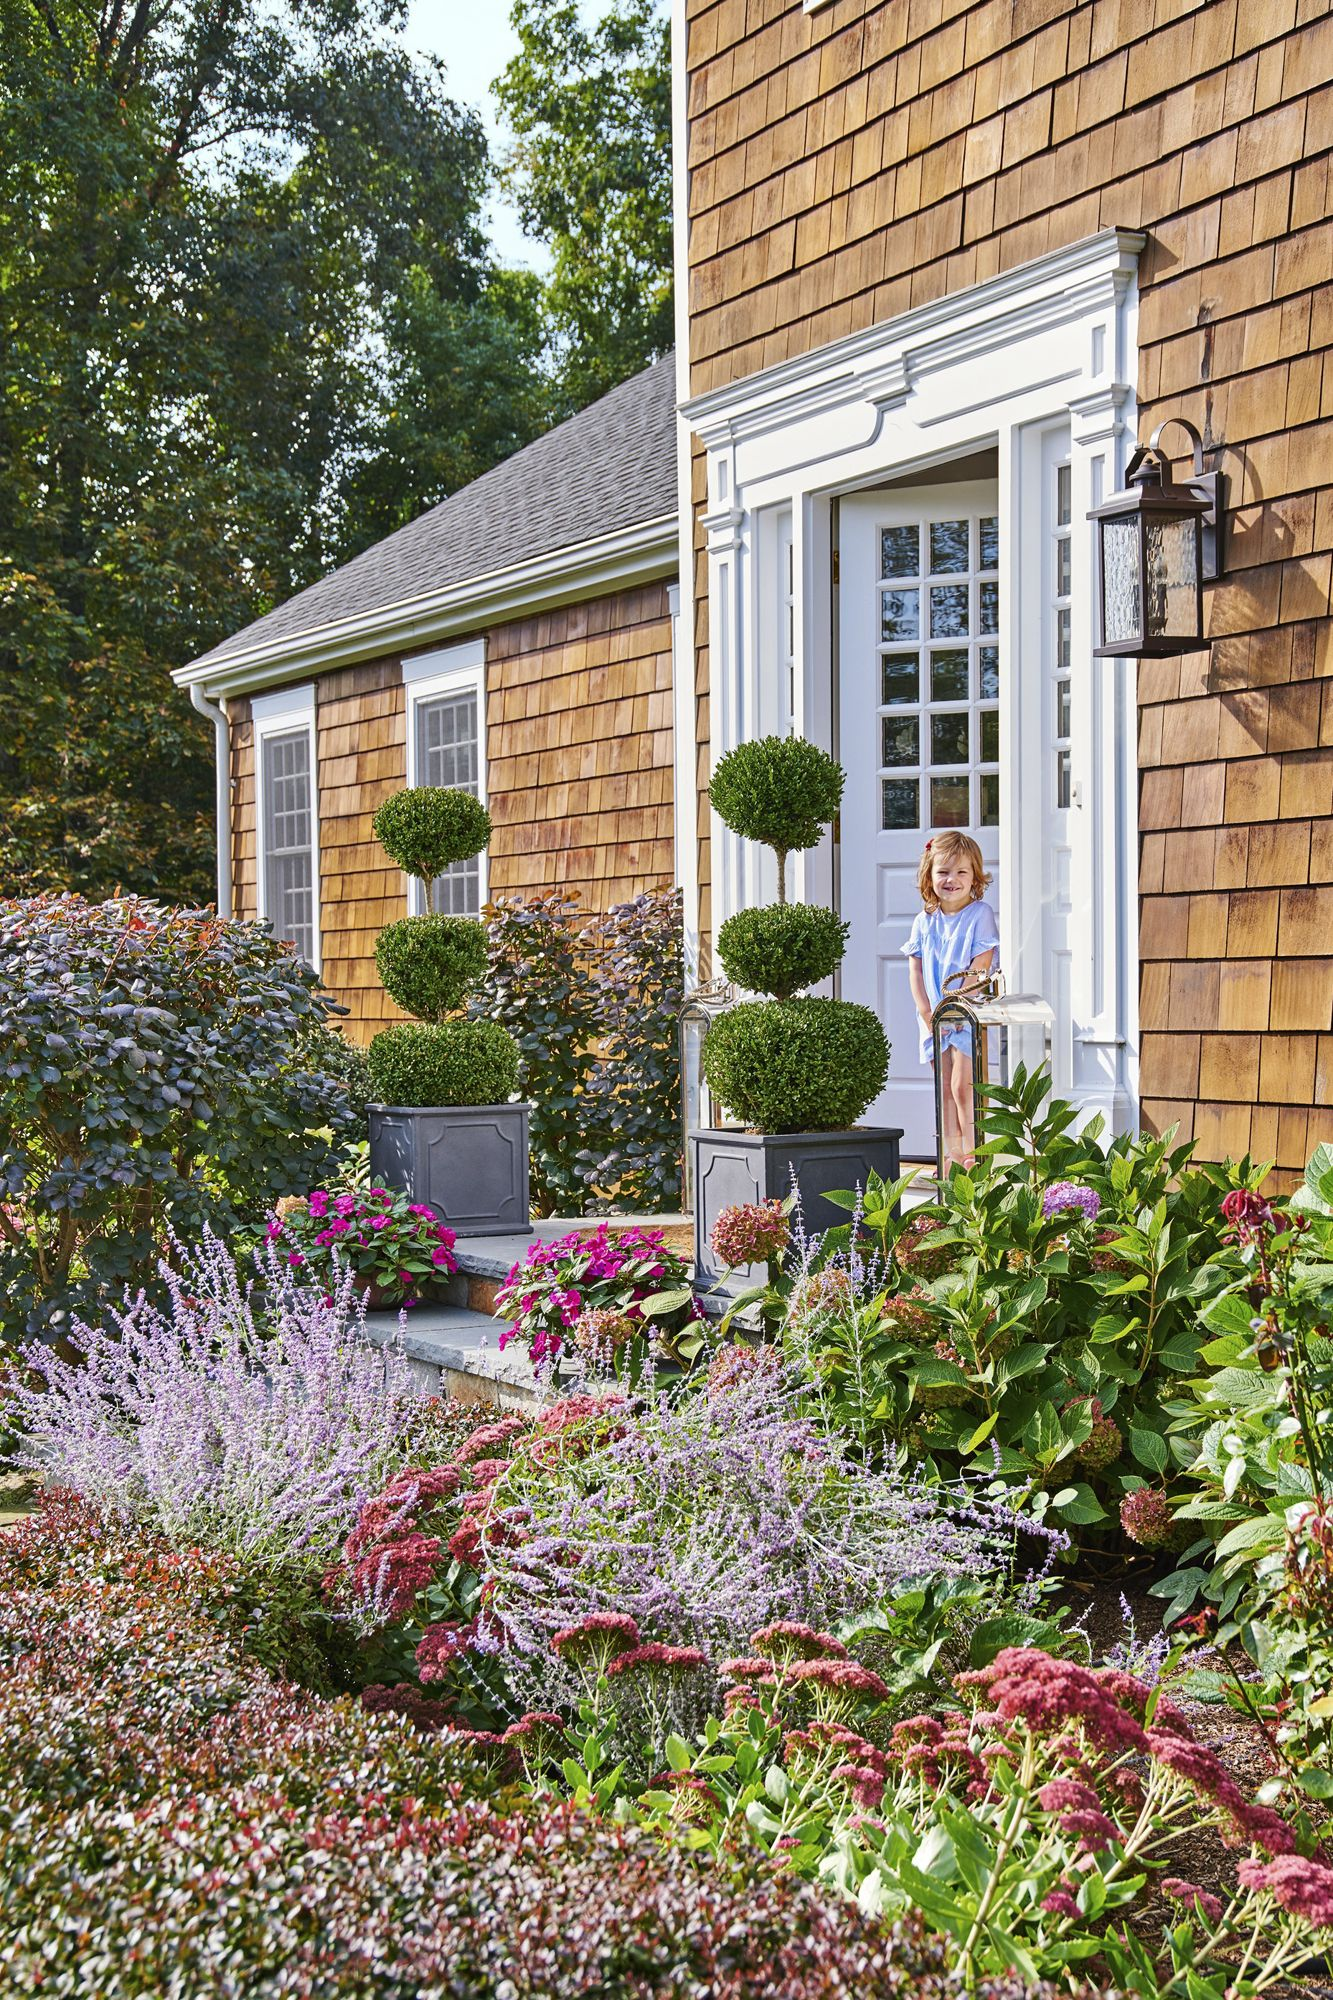 52 Best Front Yard and Backyard Landscaping Ideas ... on Landscape Front Yard Ideas id=58816